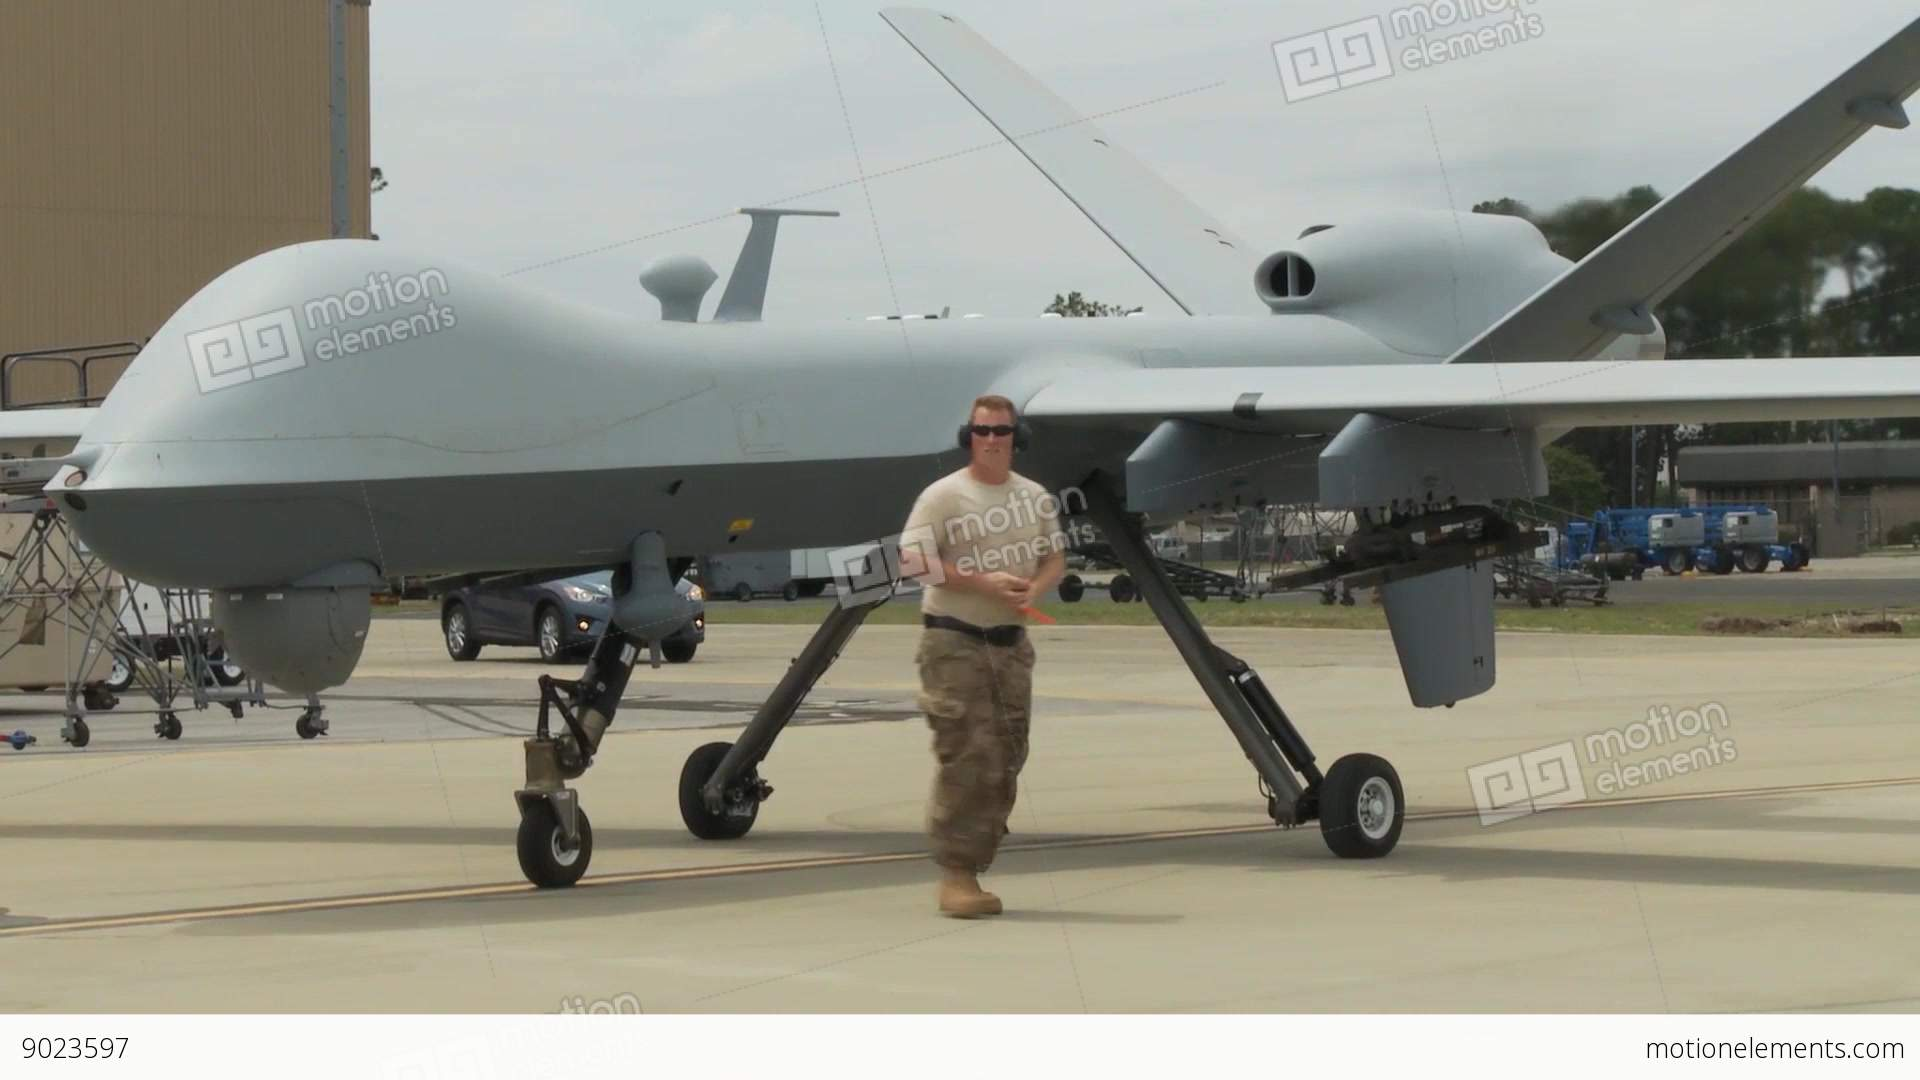 rq 1 predator drone with Stock Video 9023597 Mq 9 Reaper Uav Unmanned Aerial Vehicle on Whats Wrong With Drones further India To Induct Northrop Grumman Developed Mq 8 Fire Scout together with 629093205144502273 likewise Stock Video 9023597 Mq 9 Reaper Uav Unmanned Aerial Vehicle also General Atomics MQ 1 Predator.